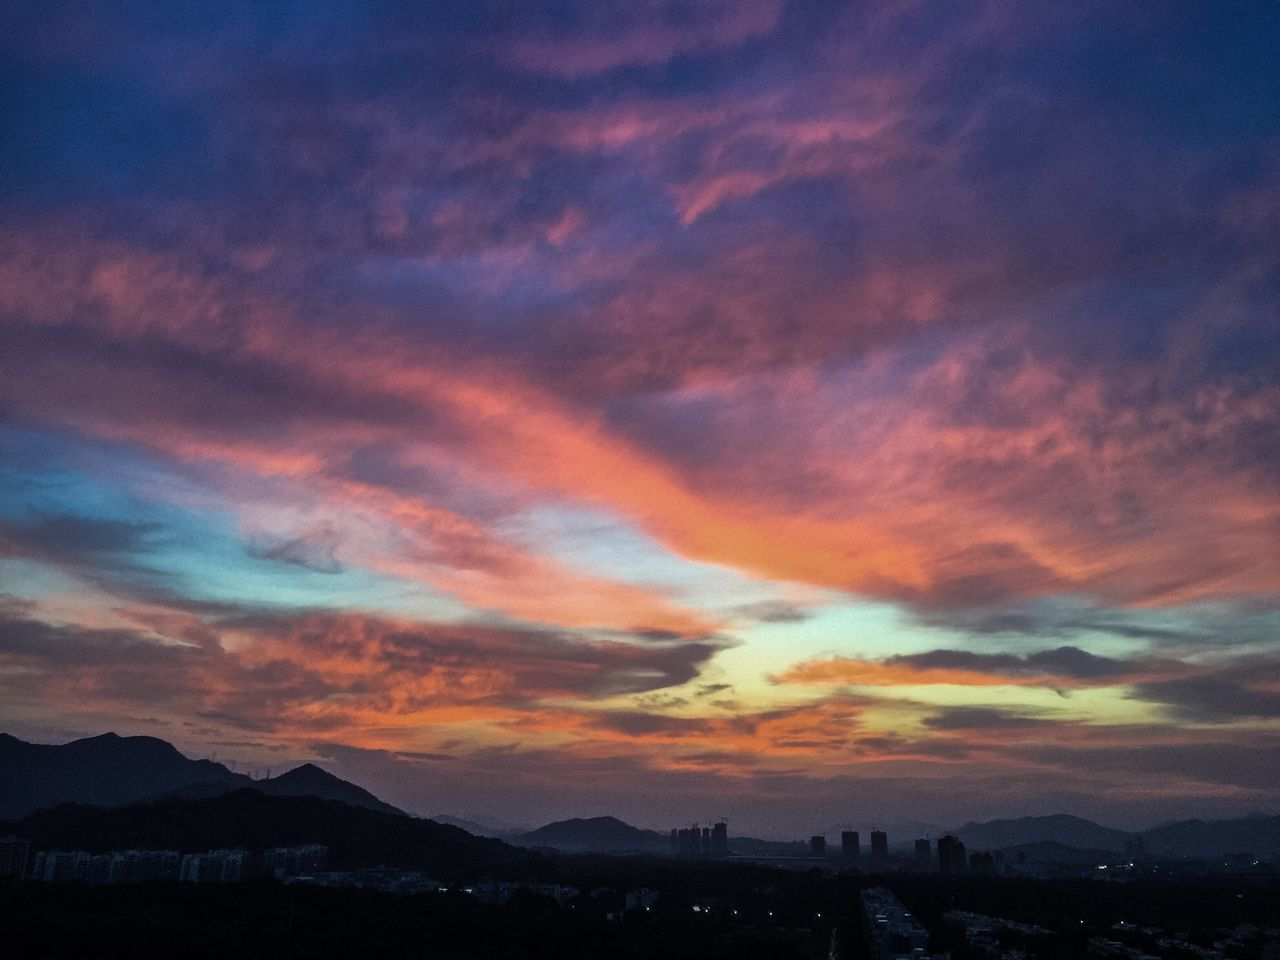 Sunset Scenics Tranquil Scene Beauty In Nature Silhouette Tranquility China Zhuhai Mountain Nature Sky Orange Color Cloud - Sky Dramatic Sky Idyllic Majestic Atmospheric Mood Atmosphere Outline Mountain Range Dark